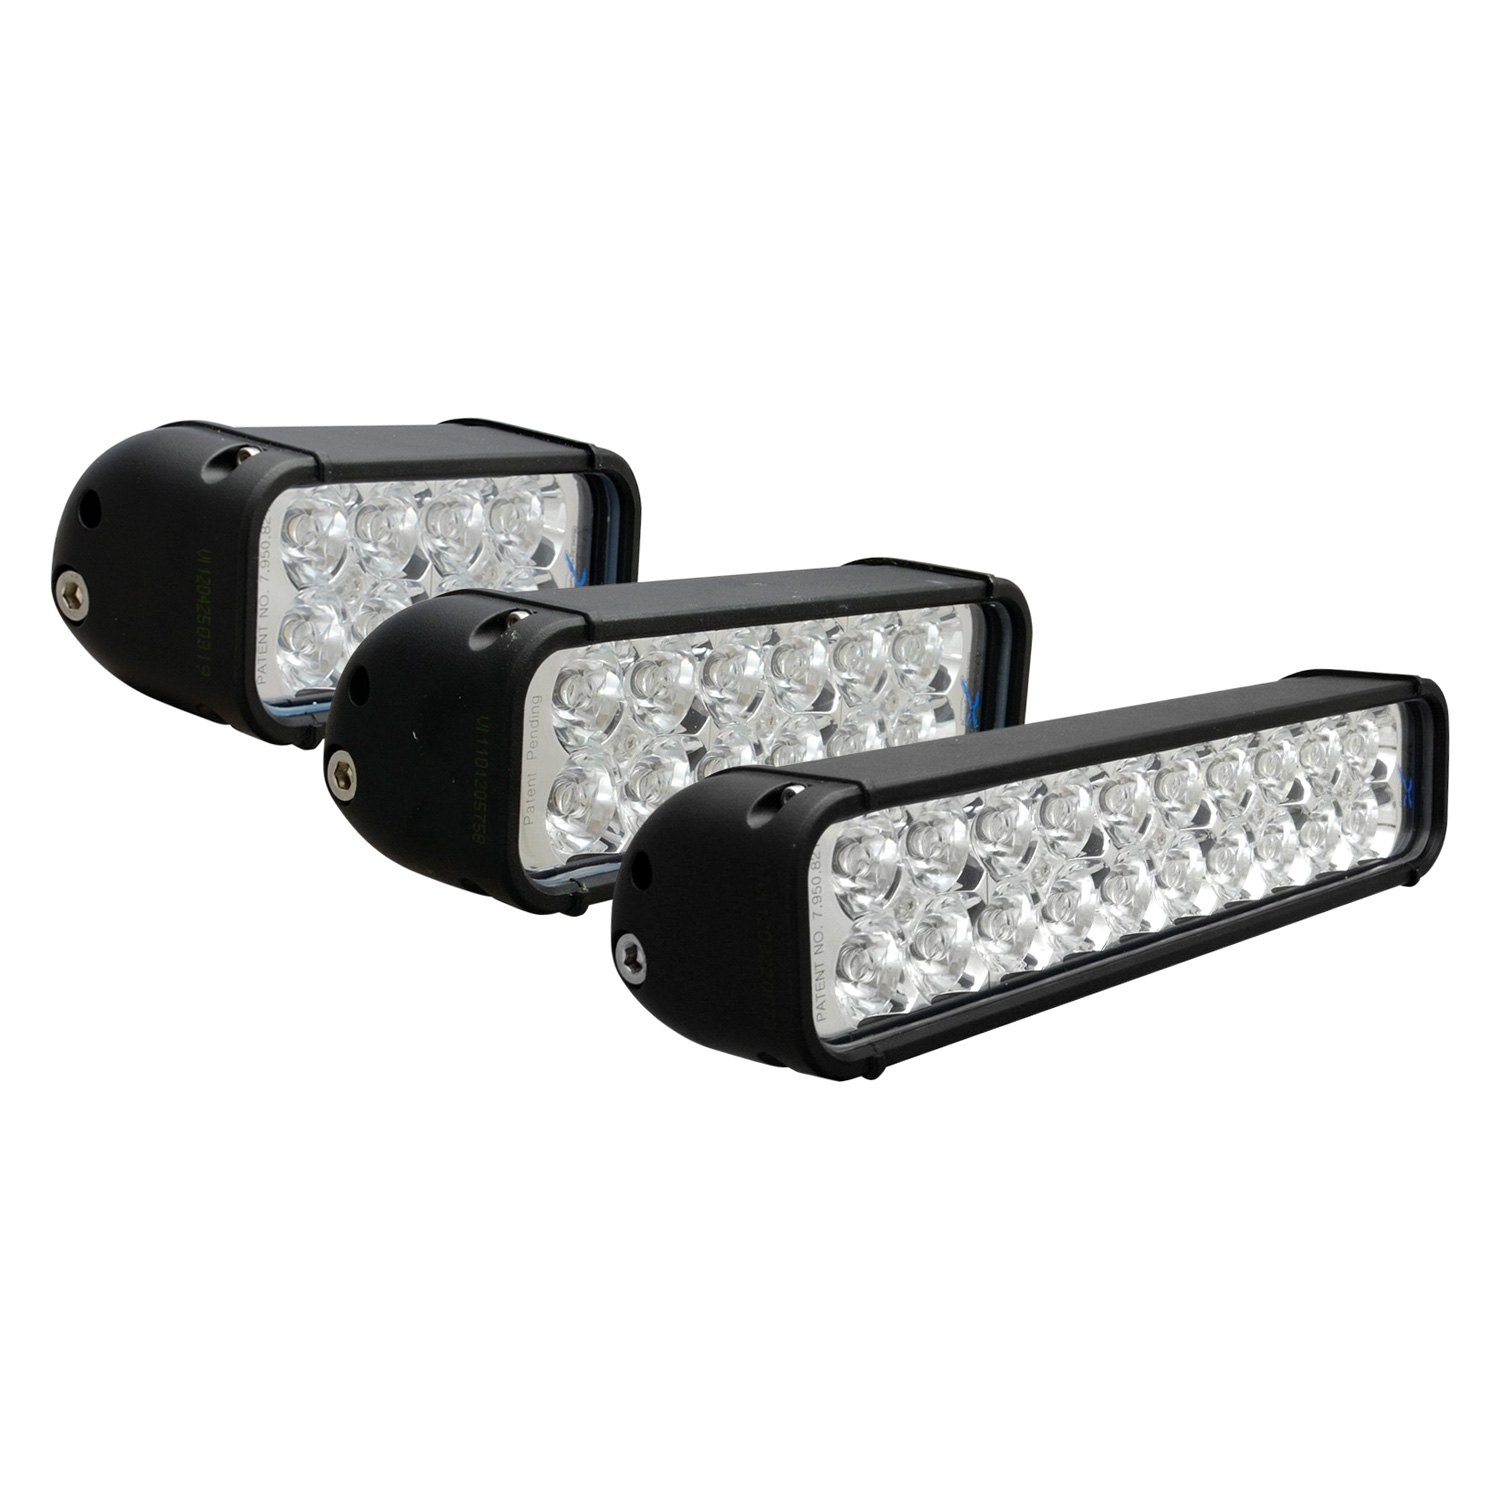 Vision x xmitter dual row led light bar vision x xmitter dual row led light bars aloadofball Images